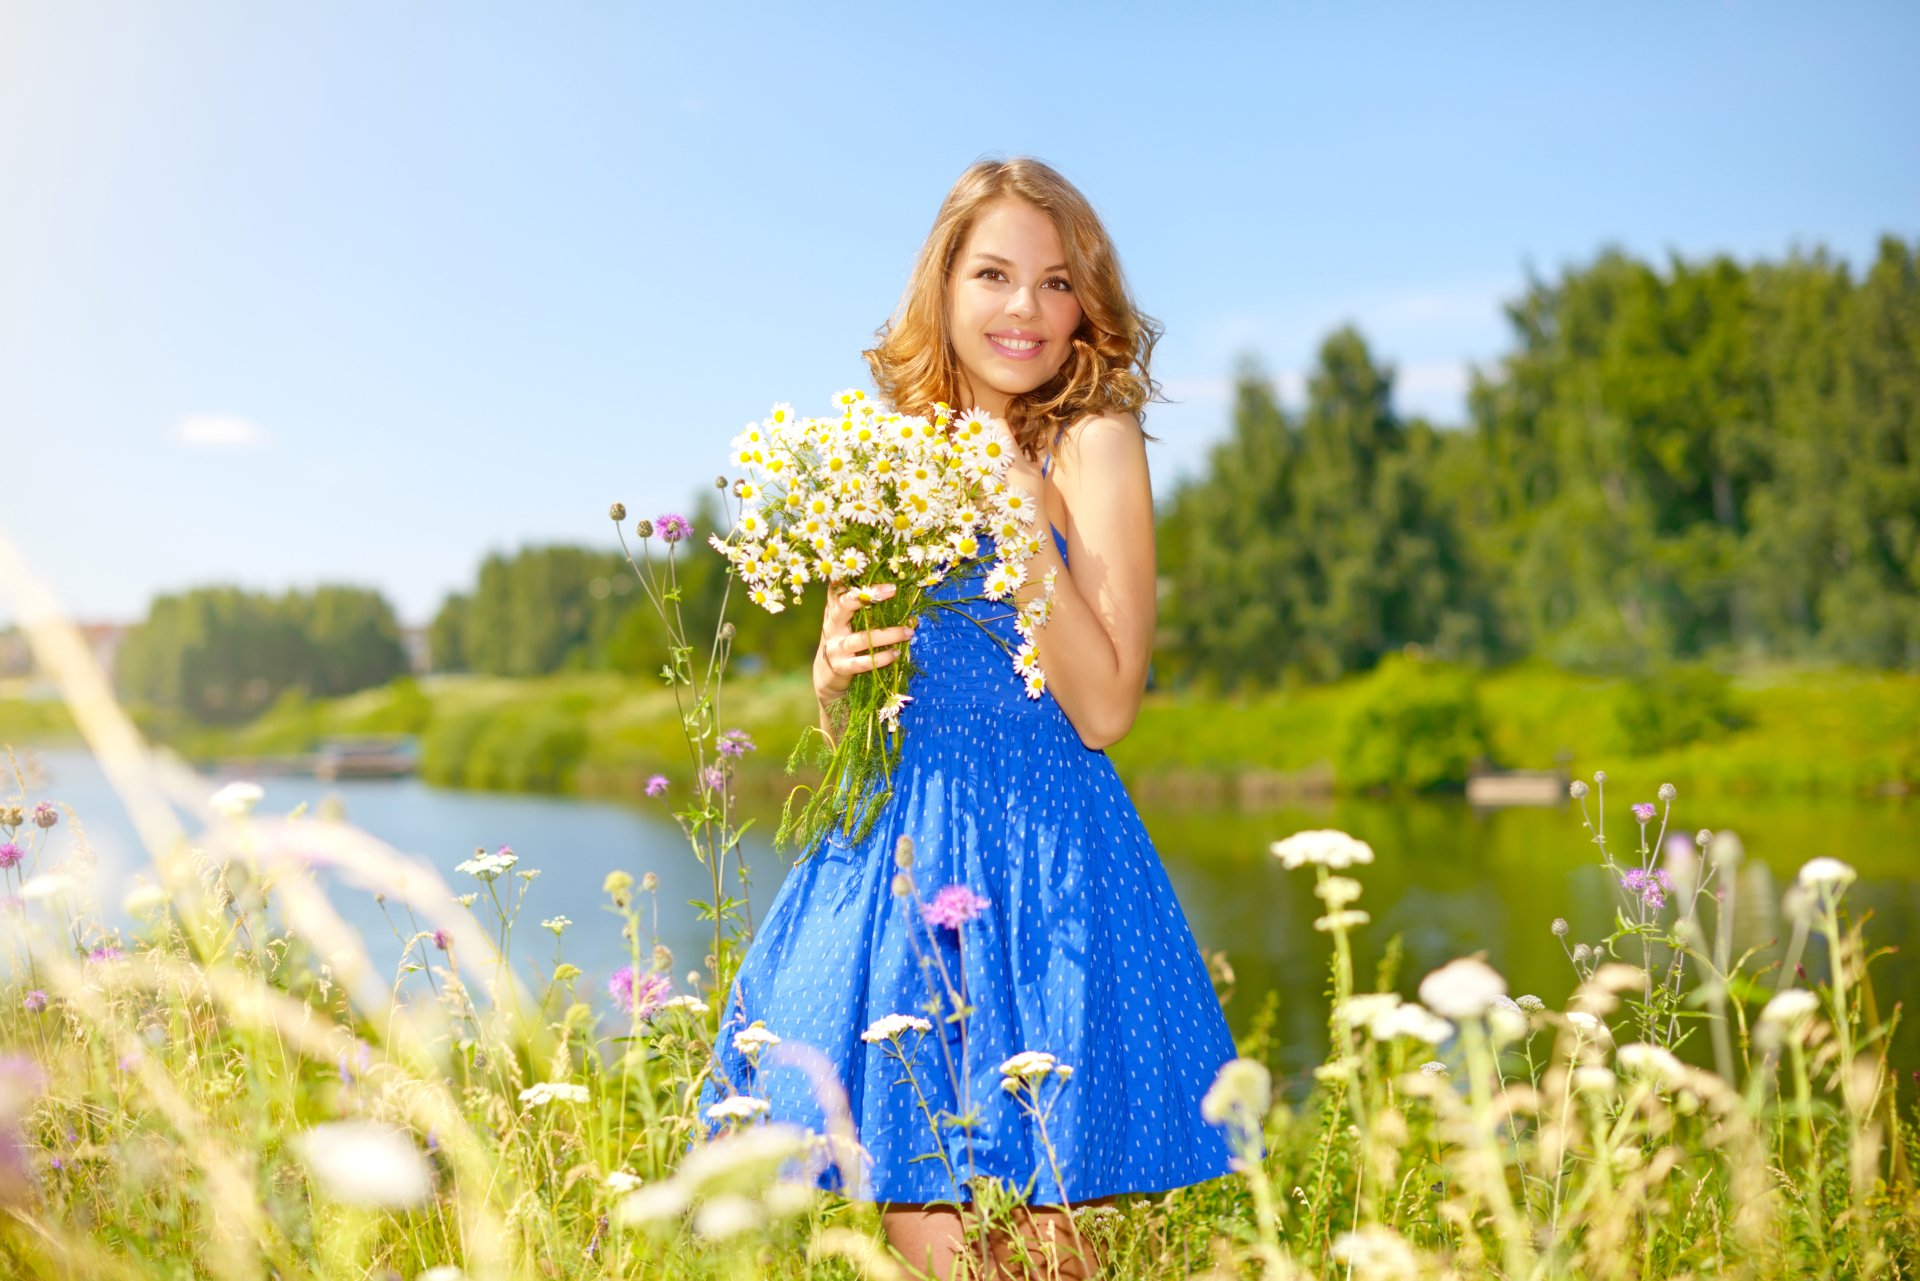 Women - Model  Woman Girl Outdoor Blue Dress Blonde Blur Smile White Flower Wallpaper